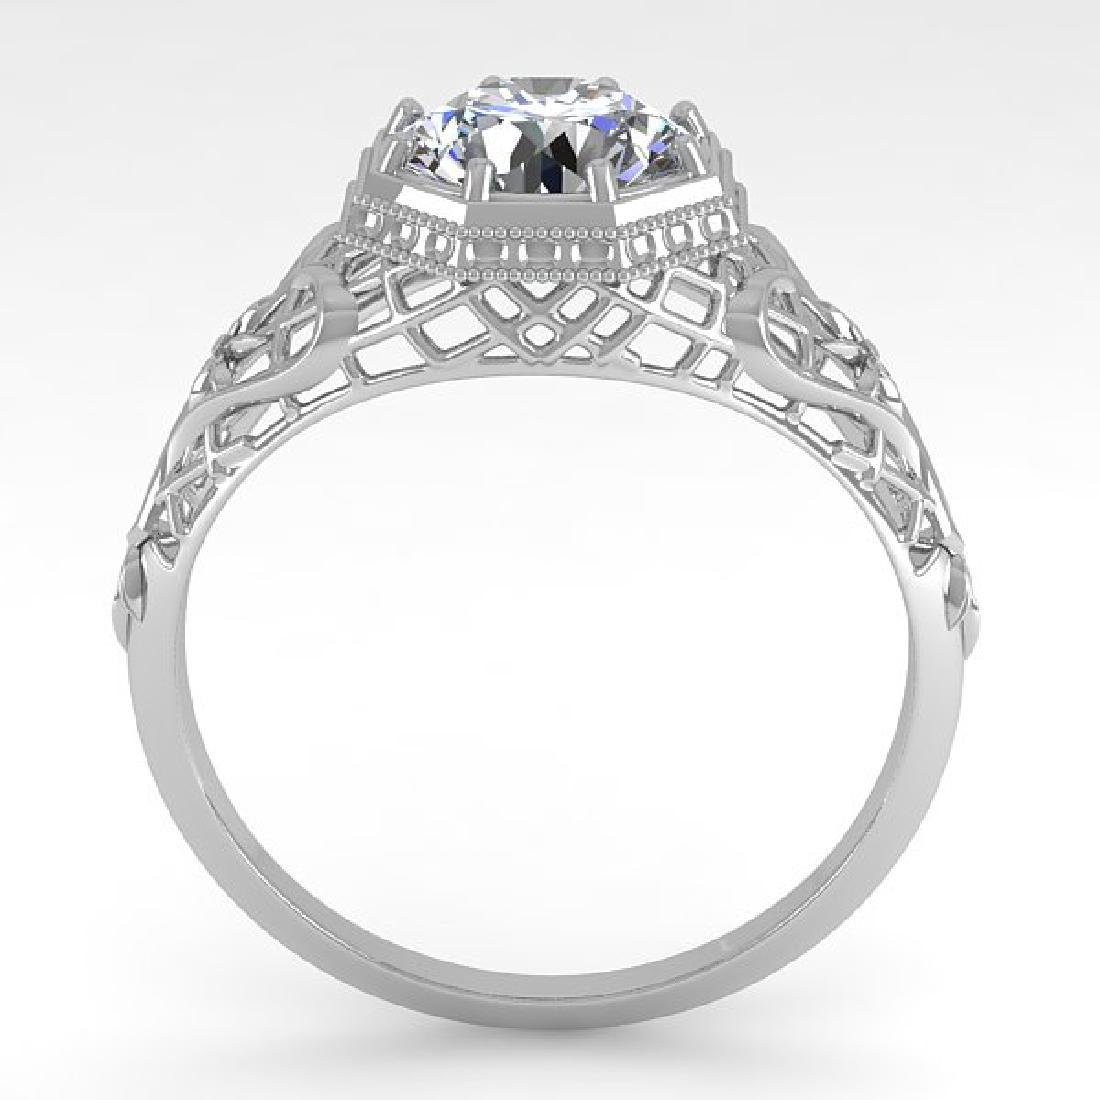 1.50 CTW VS/SI Diamond Solitaire Ring 14K White Gold - 3